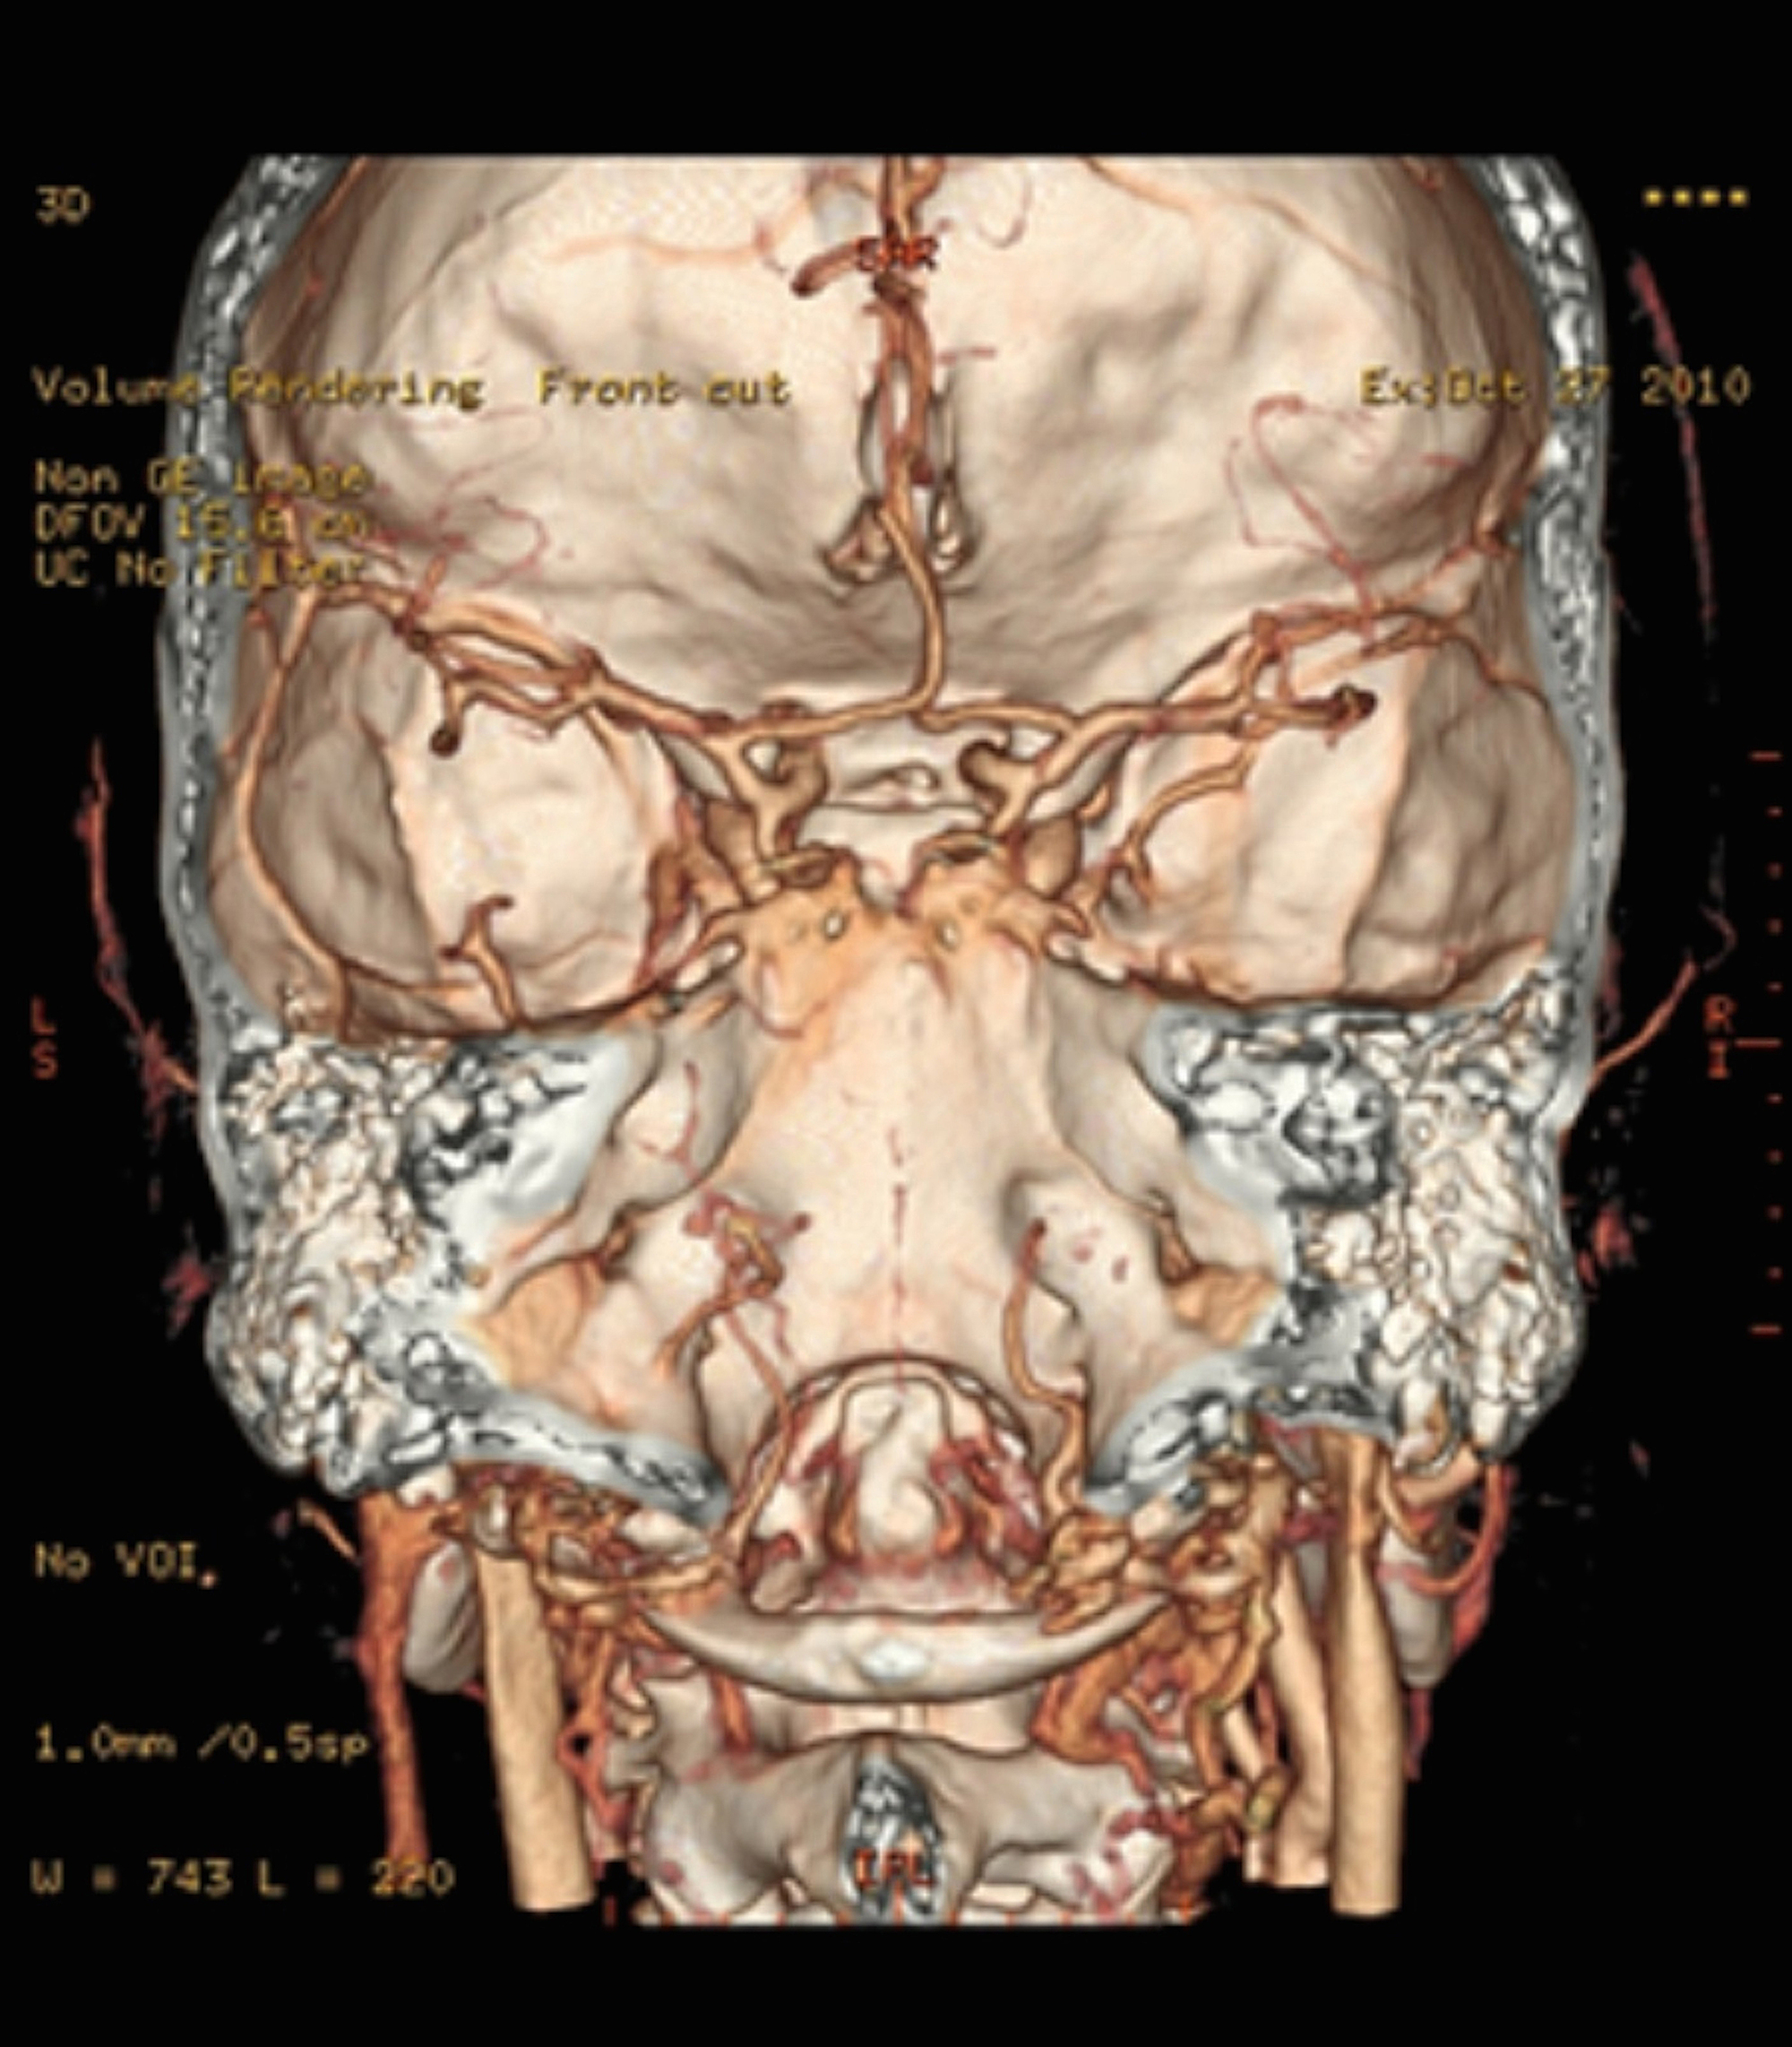 Cureus | Two Unusual Cases of the Posterior Cranial Fossa Blood Supply